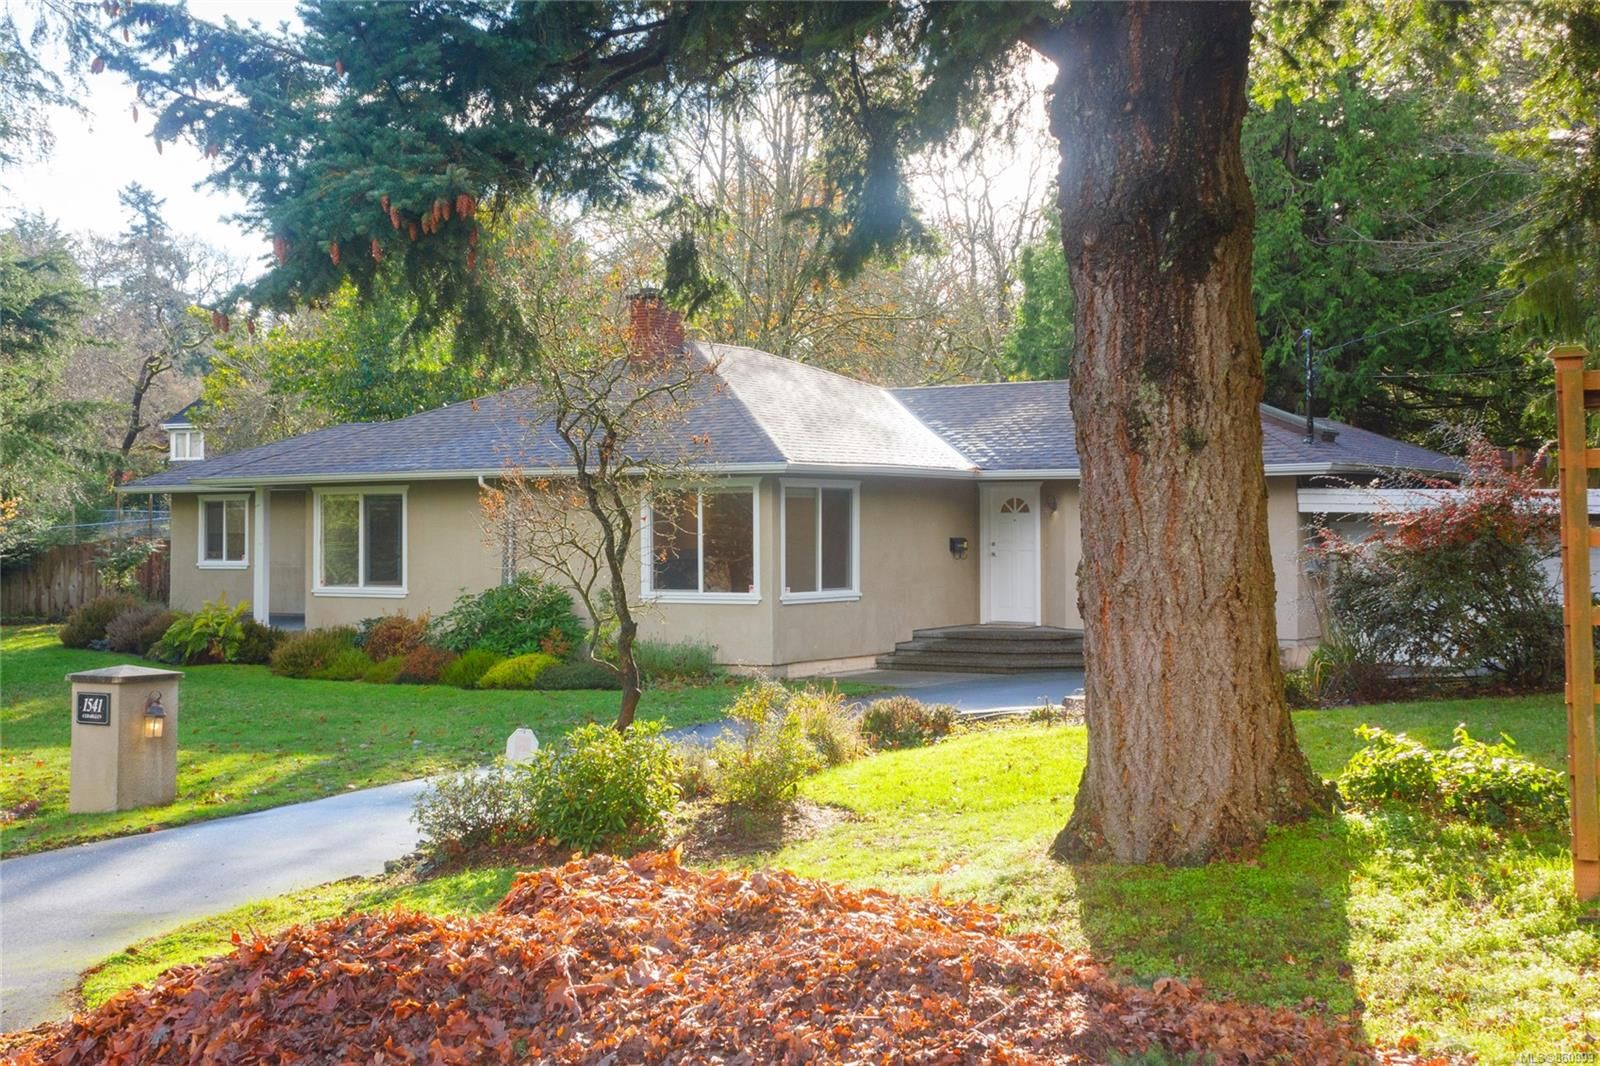 Main Photo: 1541 Cedarglen Rd in : SE Mt Doug House for sale (Saanich East)  : MLS®# 860999